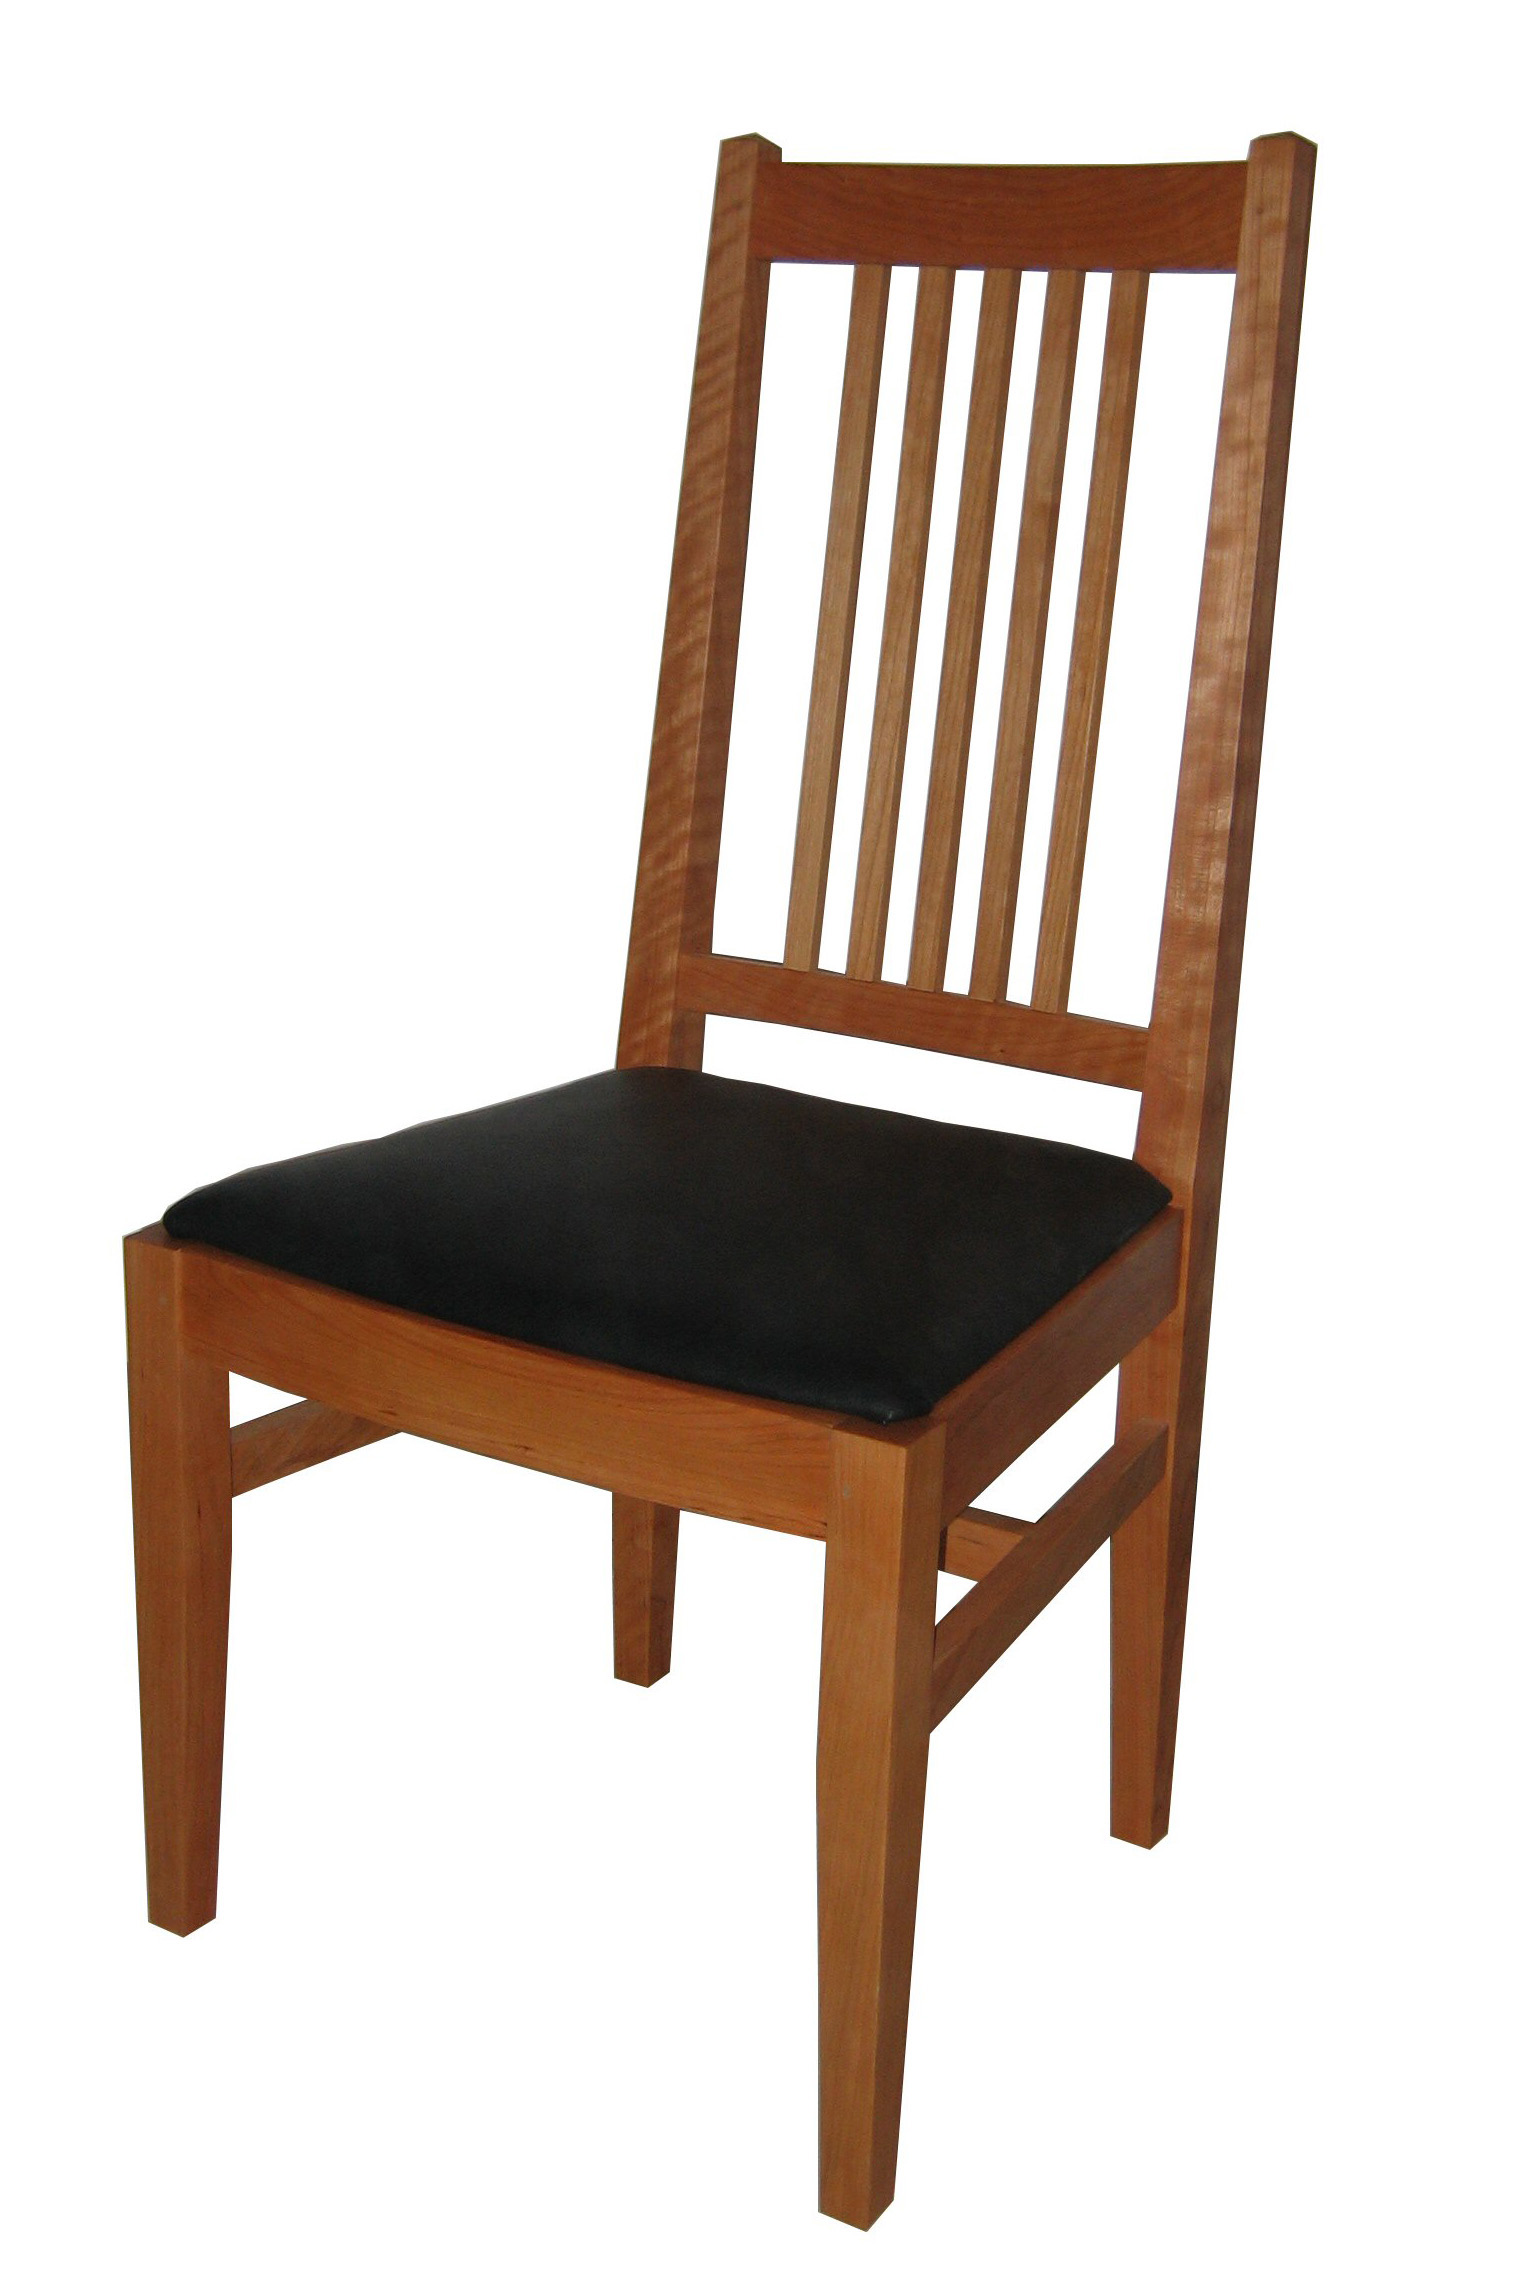 cherry wood chairs power recliner chair reviews a look at richard bissell 39s shaker and mission furniture